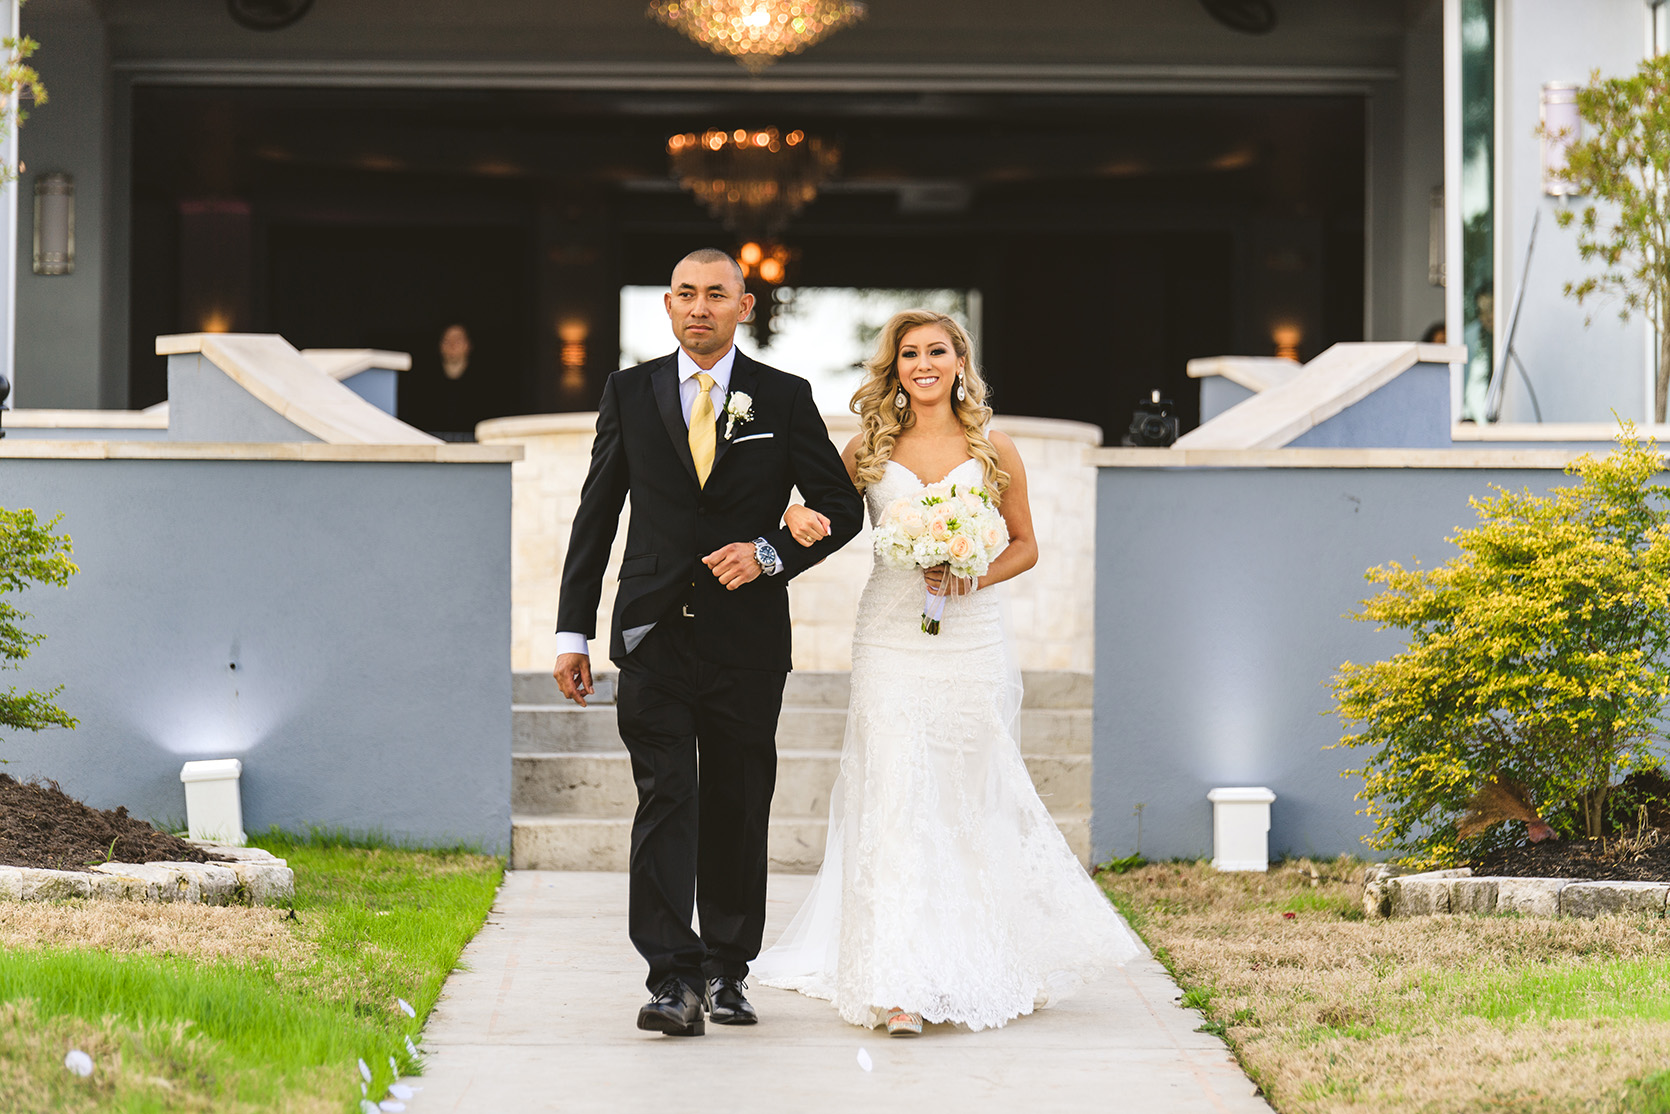 houston wedding, walk down the aisle, father, bride